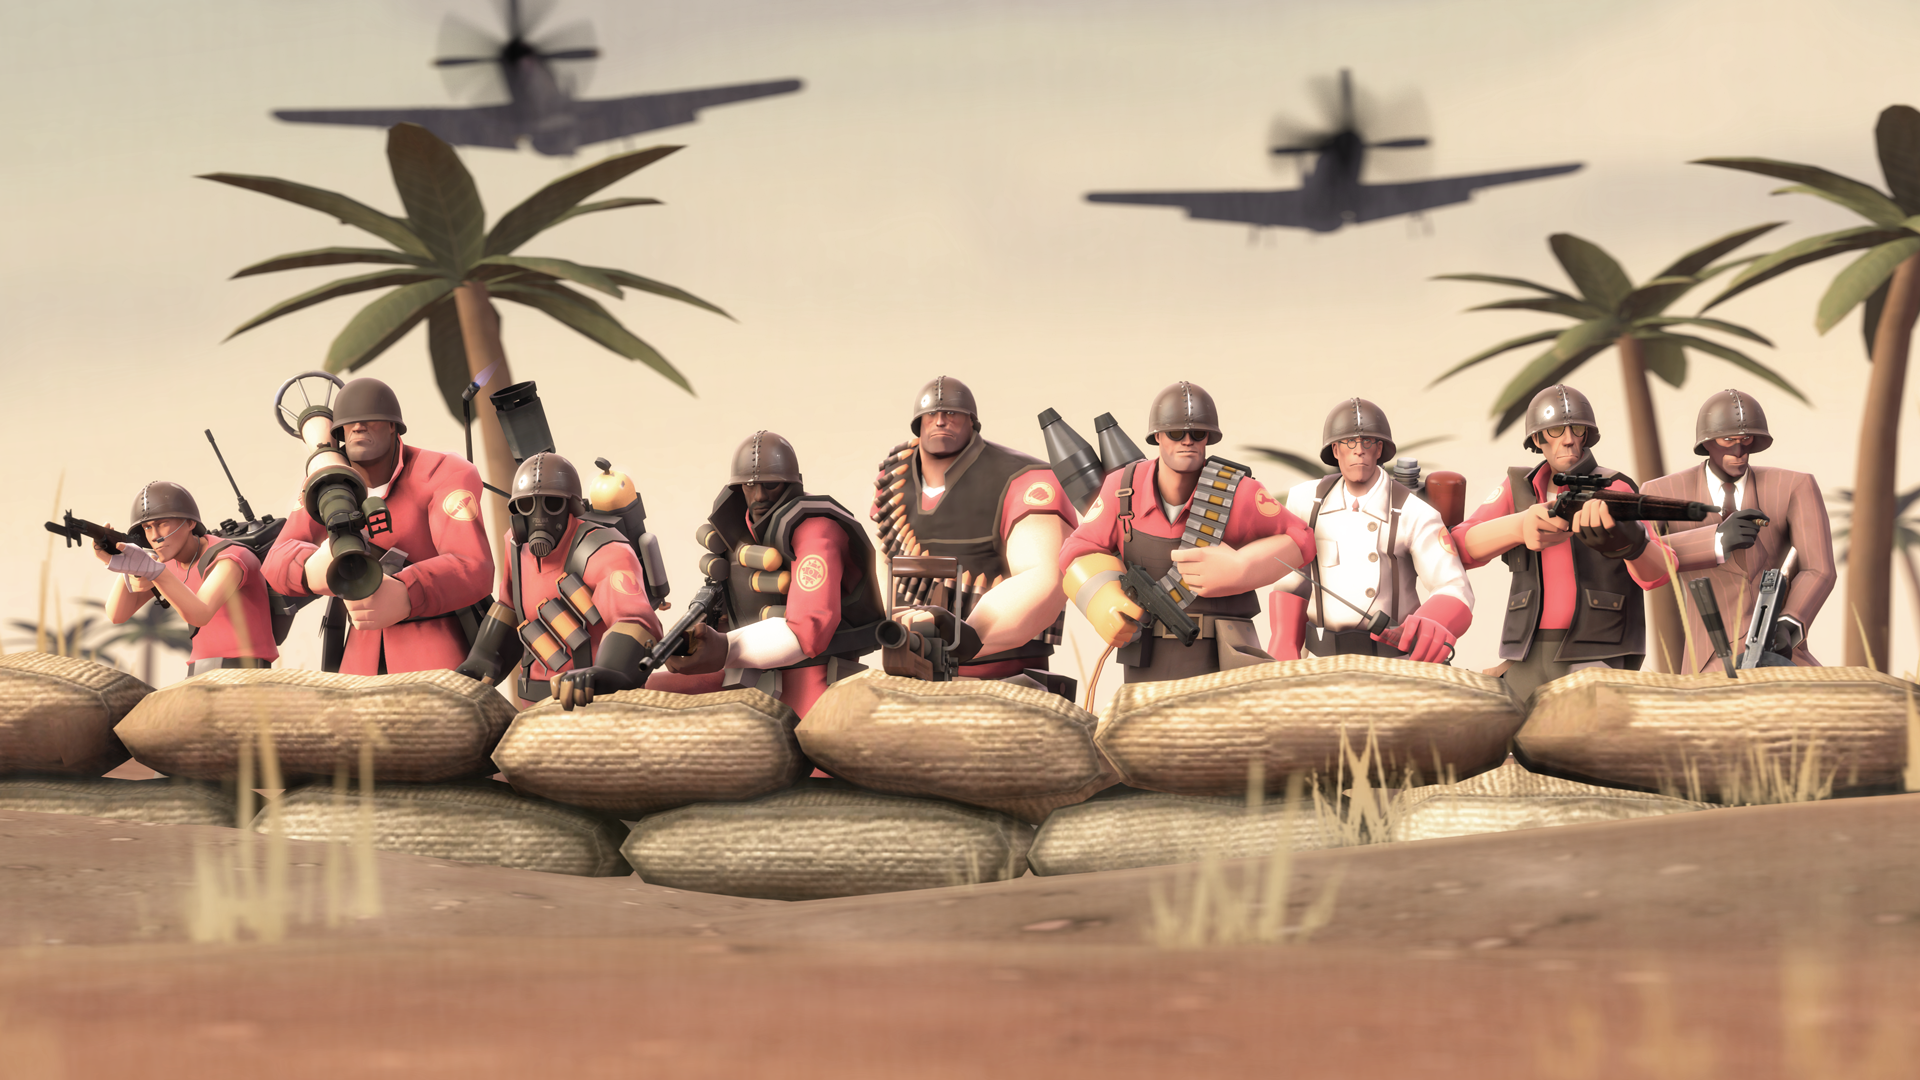 19 Cool Team Fortress 2 Wallpapers - BC-GB - Gaming & Esports News & Blog